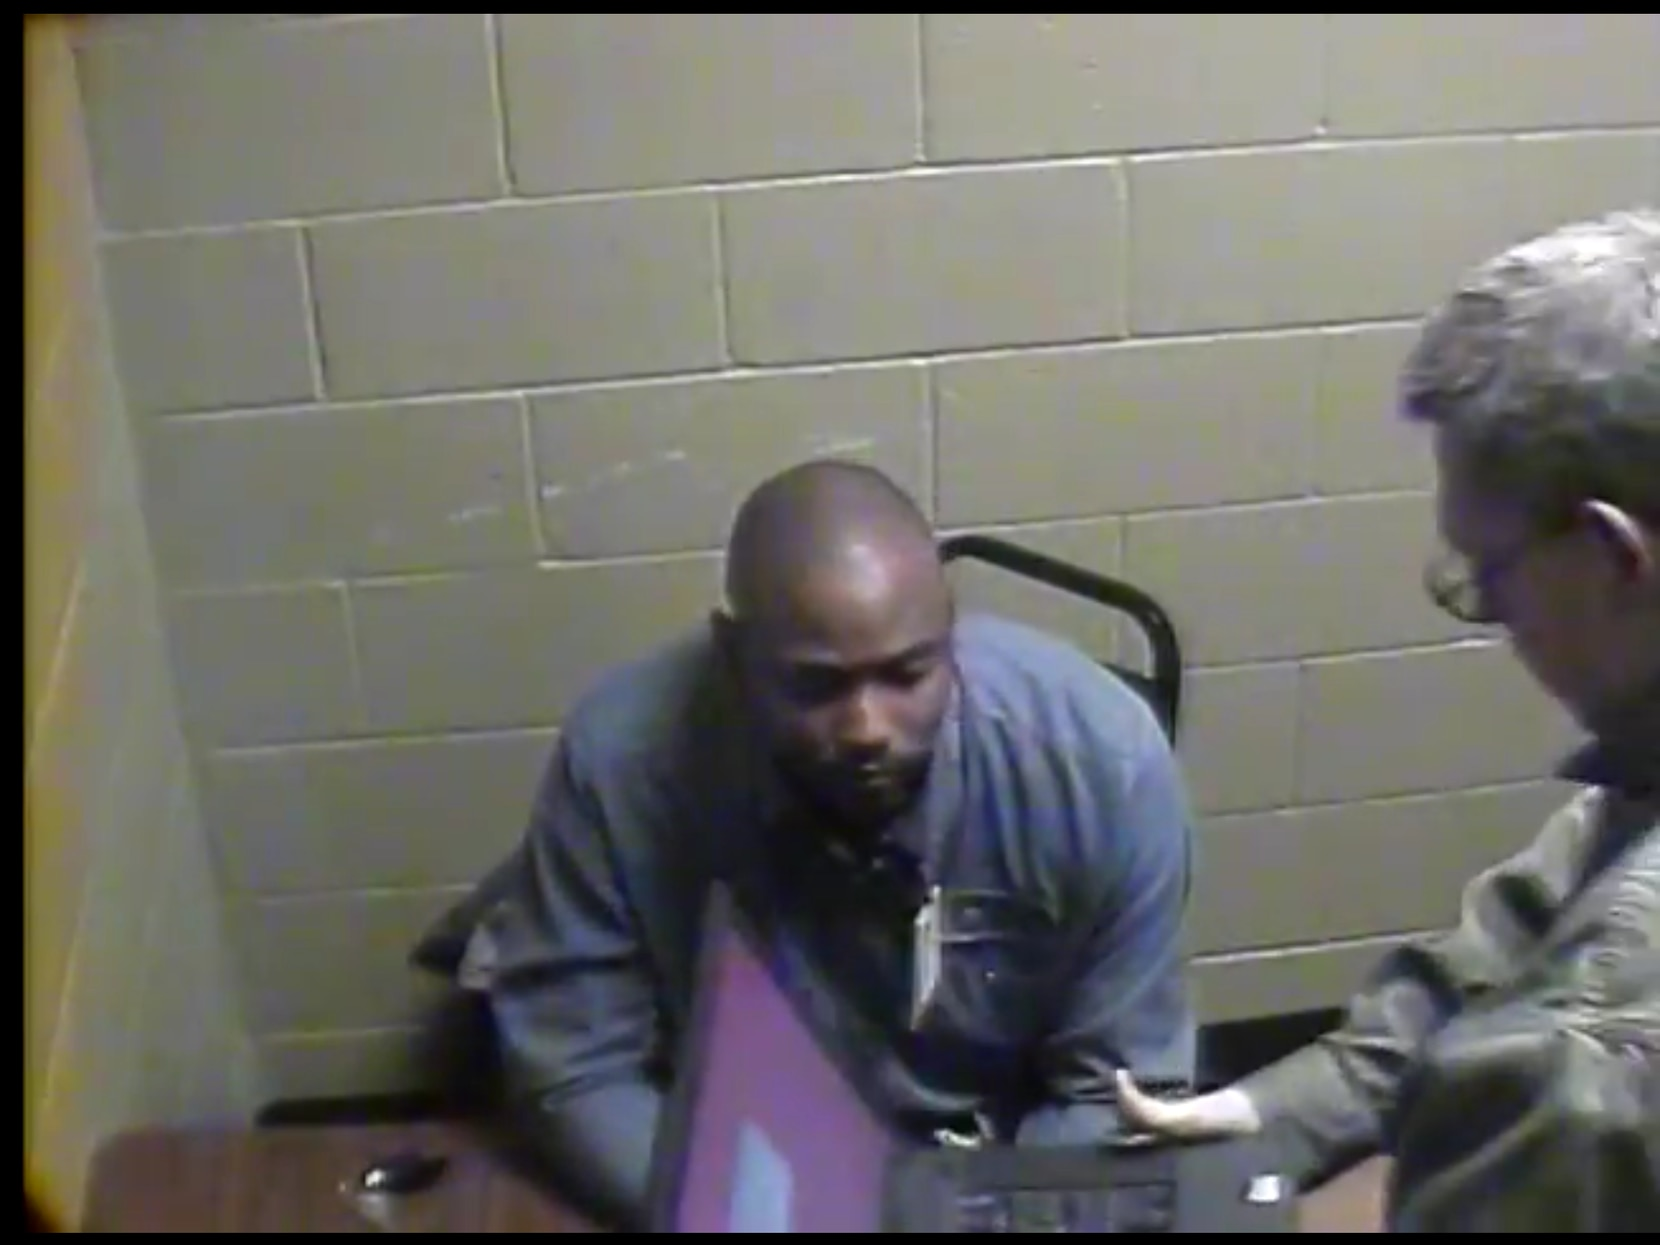 Sgt. James Young (right) brought in a laptop to show Michael Cunningham the surveillance video of what happened outside the convenience store. Young and fellow officer Haber. now the Balch Springs chief, said the video did not show an assault. A federal judge disagrees.